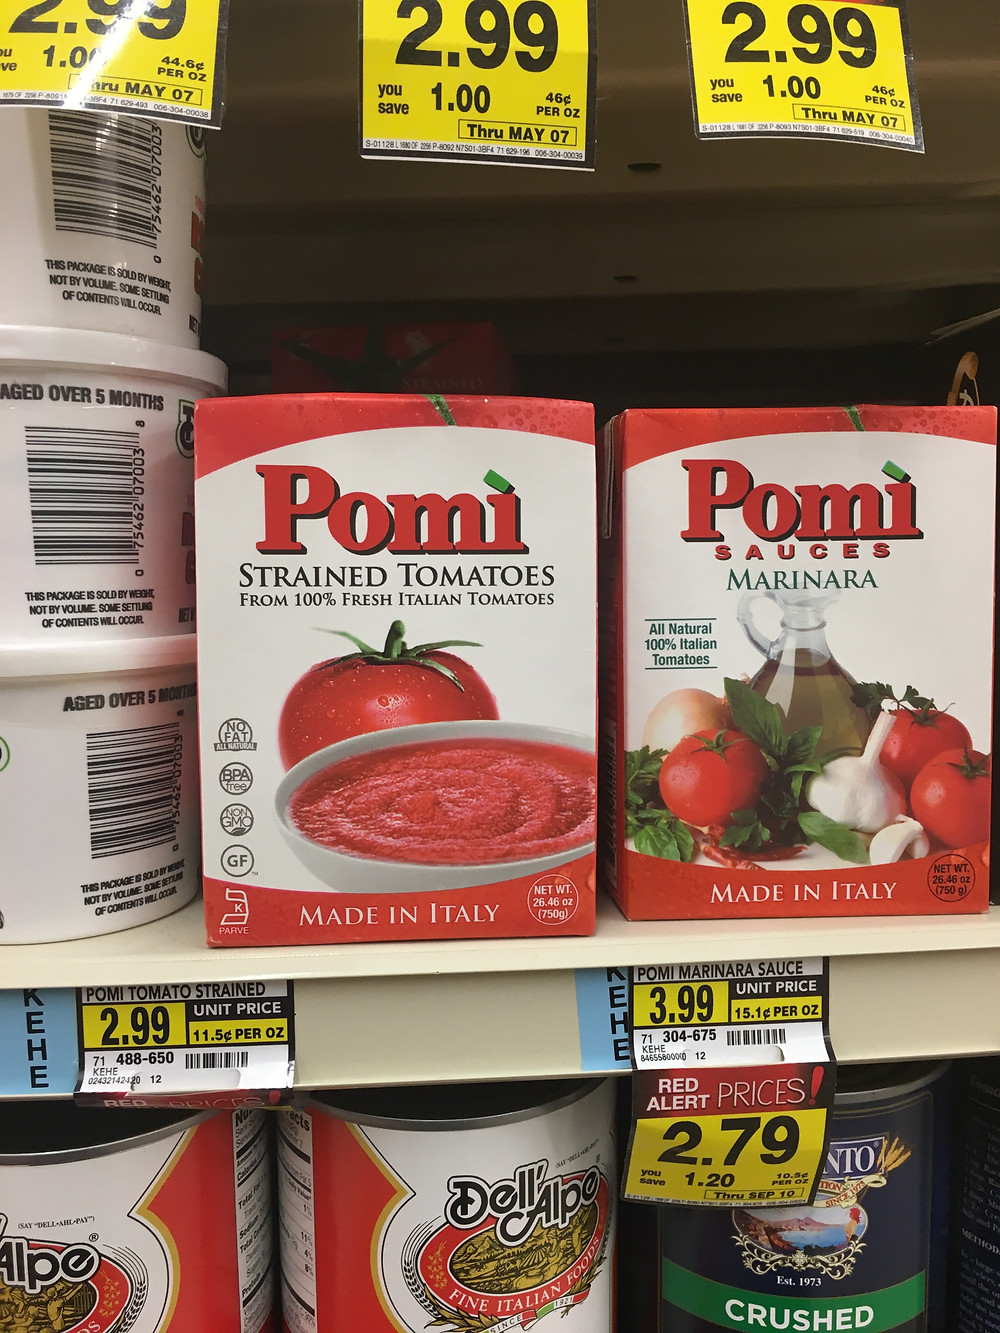 Can't go wrong with Pomi strained tomatoes!